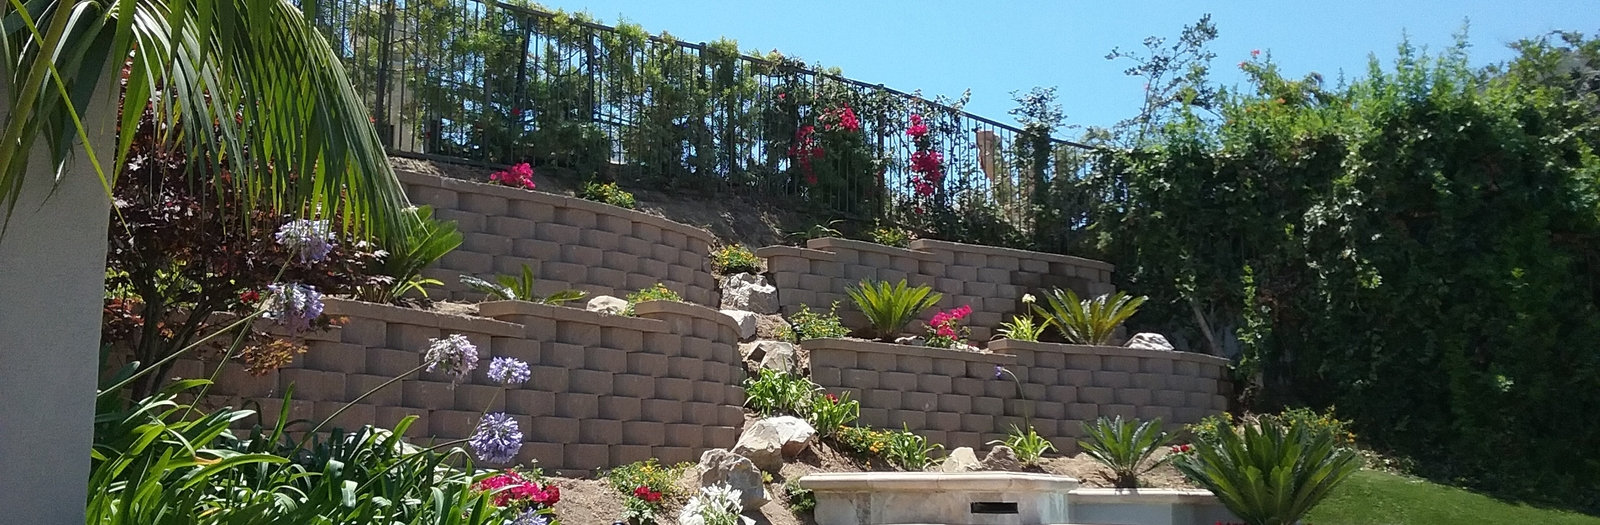 Garden Landscape with curvy segmented retaing wall